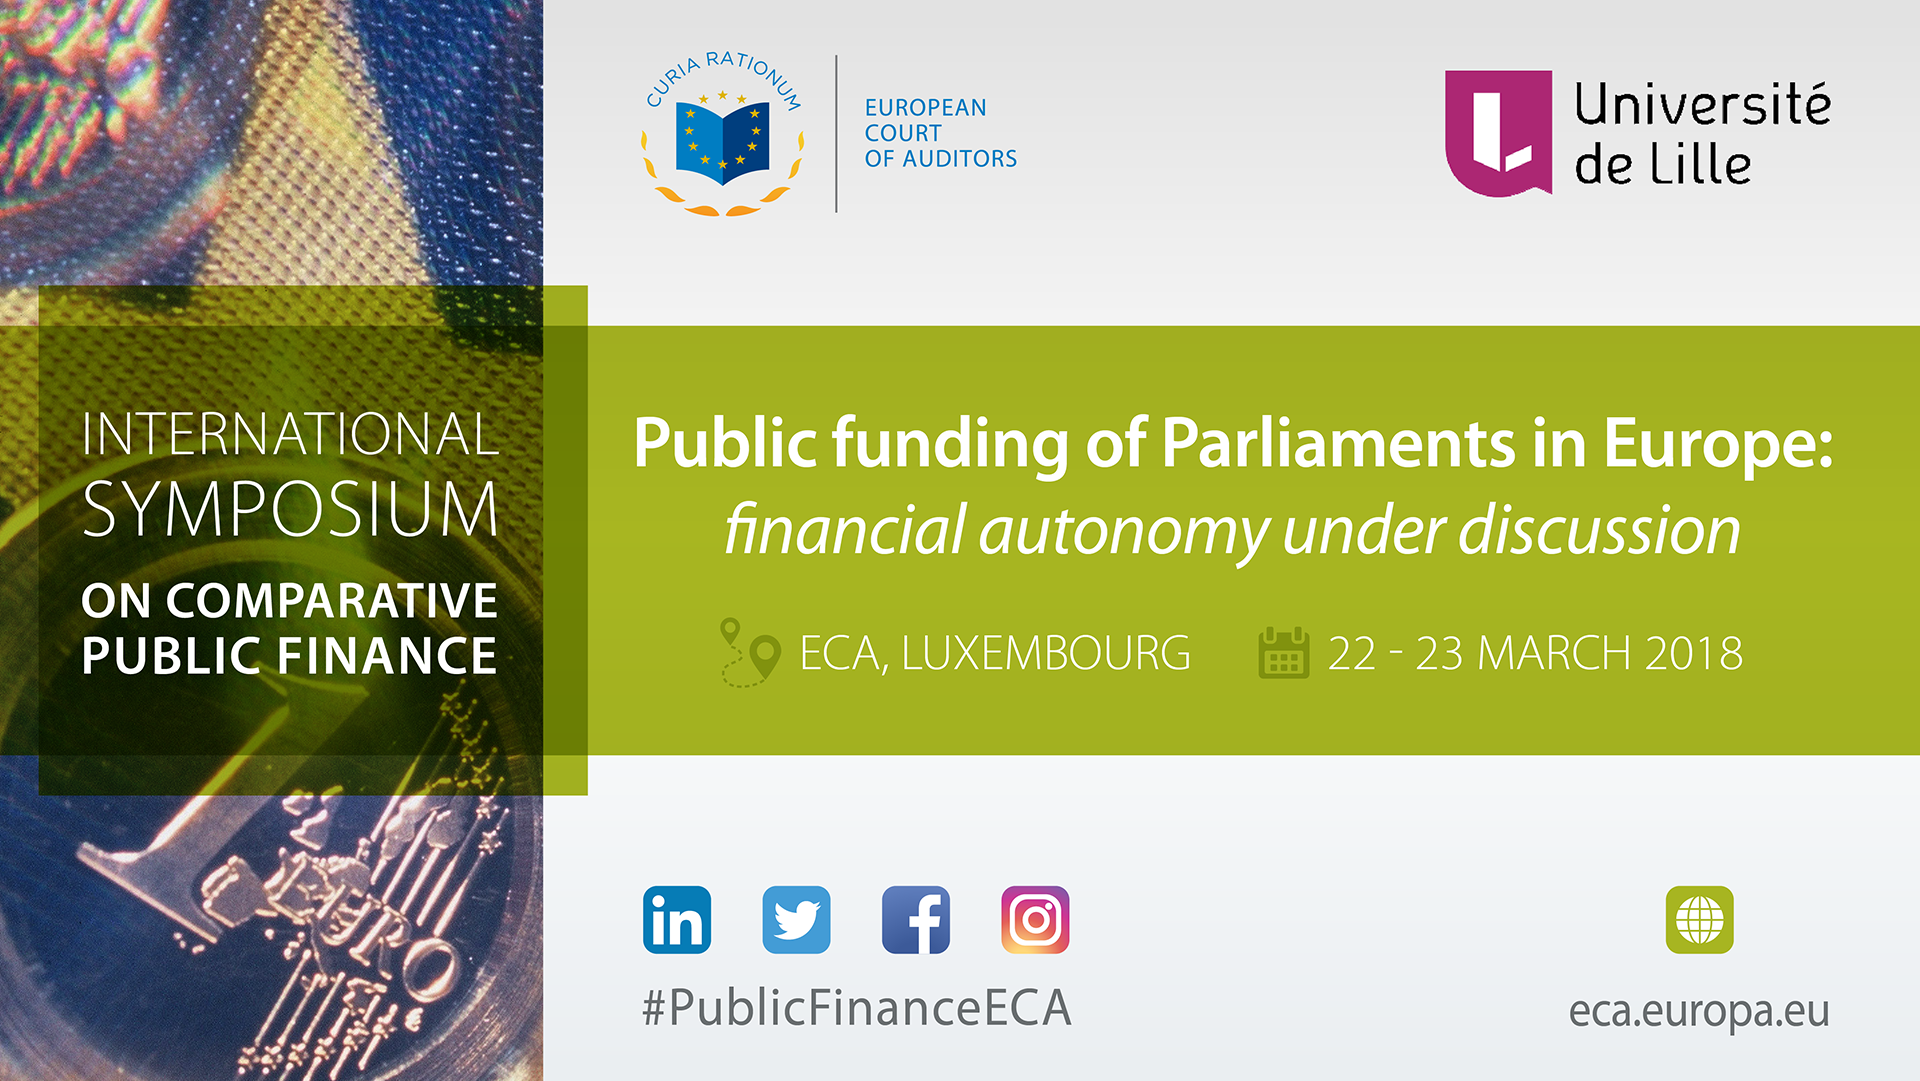 ECA hosts international symposium on public funding of parliaments in Europe: financial autonomy under discussion — 22-23 March 2018, Luxembourg